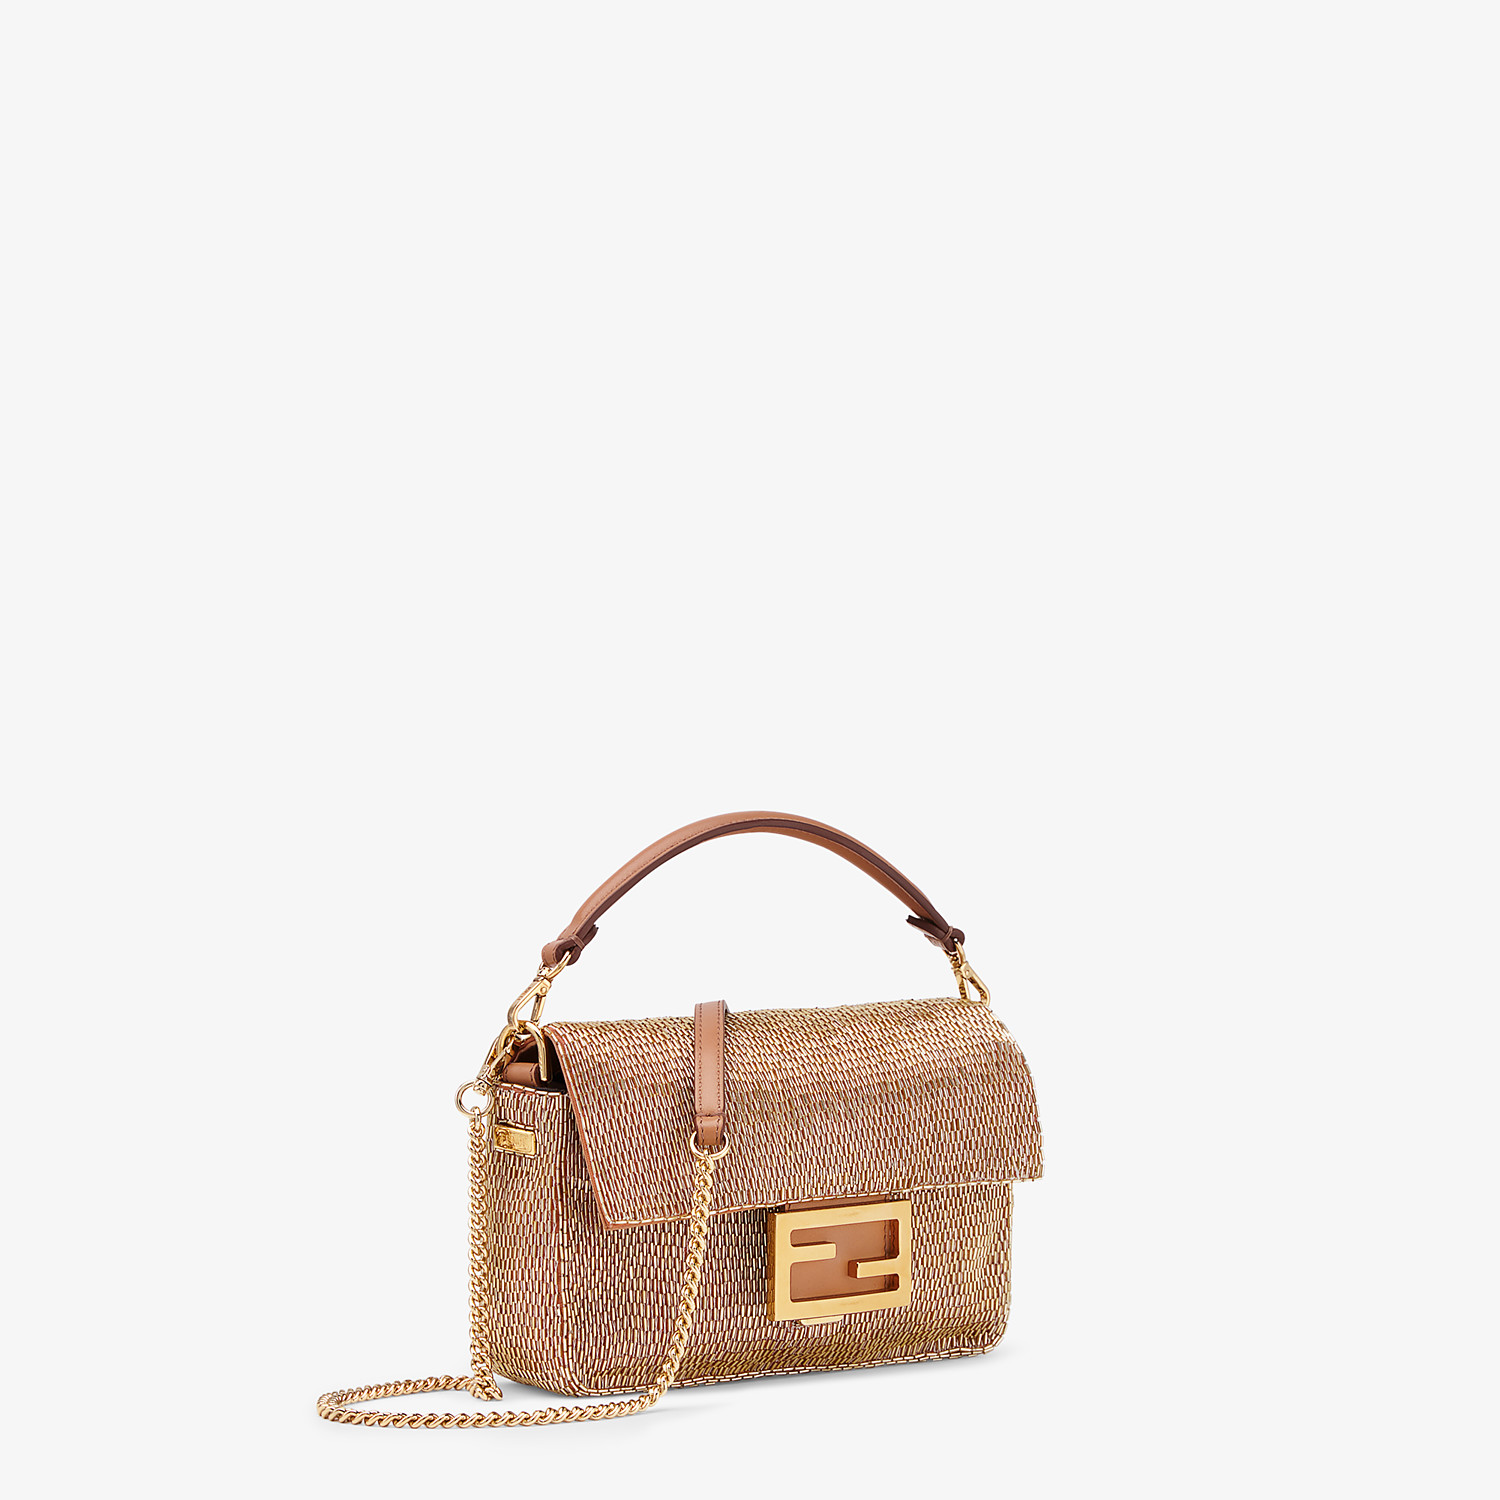 FENDI BAGUETTE - Brown leather bag - view 2 detail